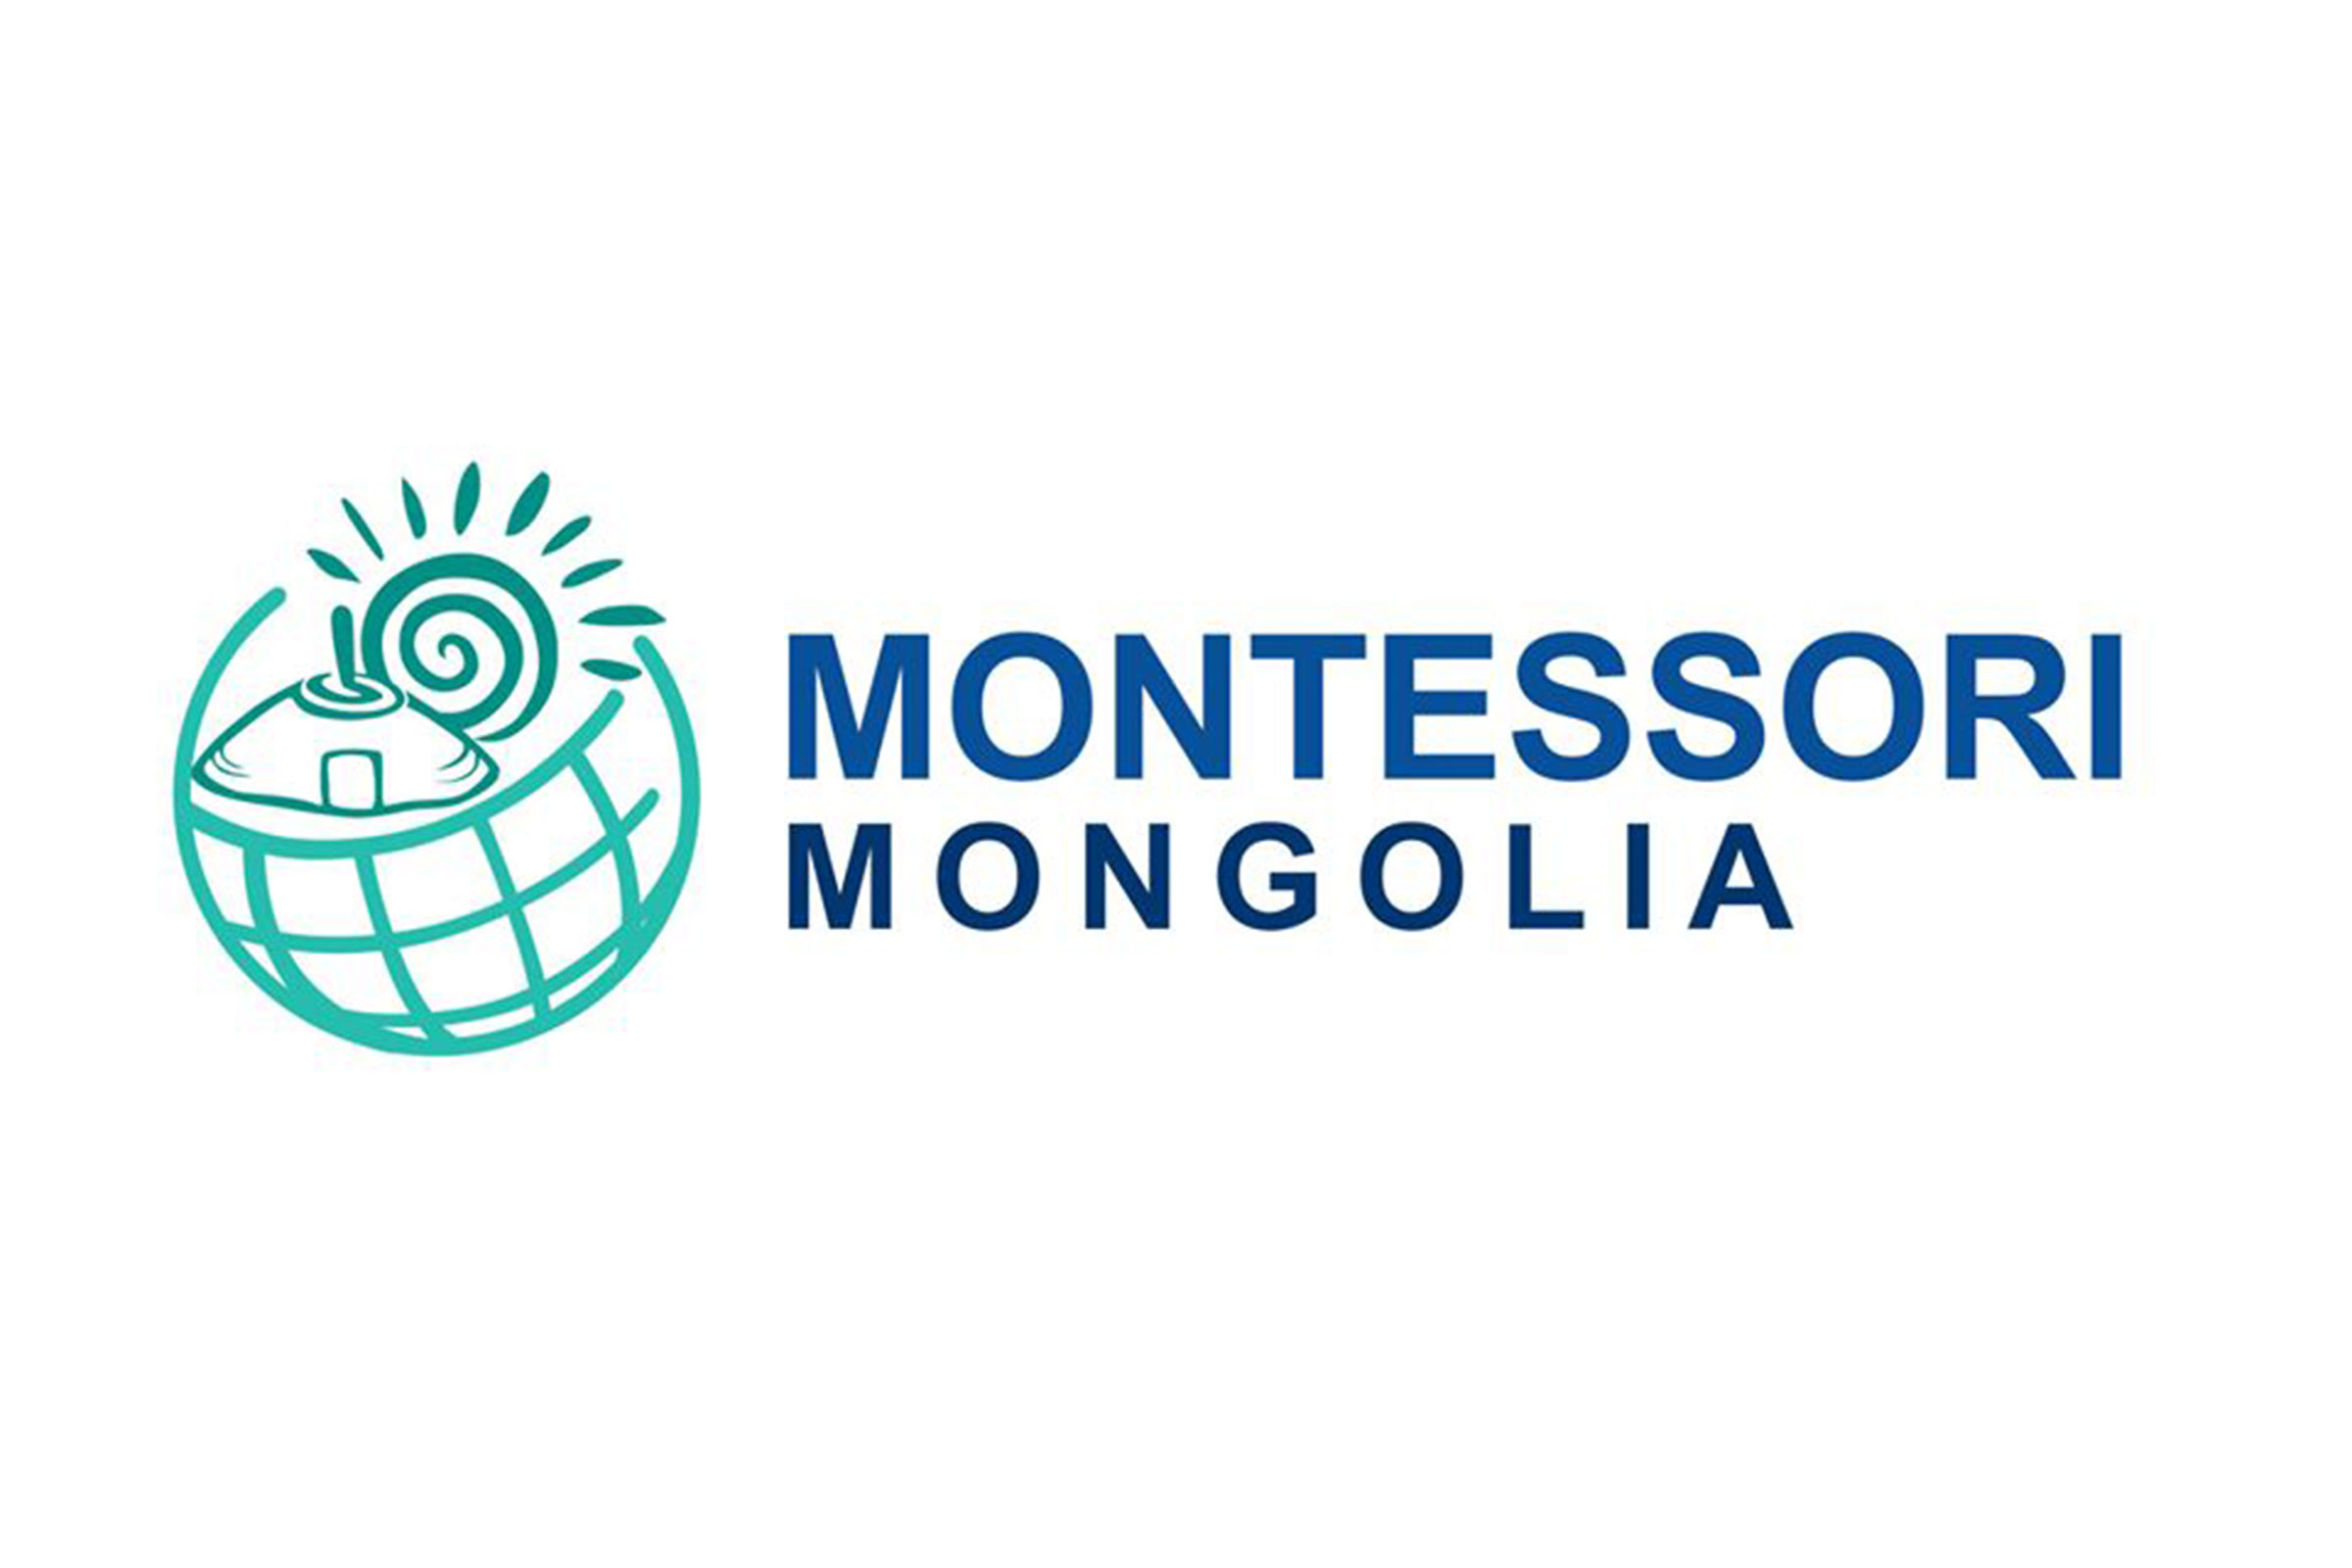 Association of the Montessori Mongolian Teachers logo